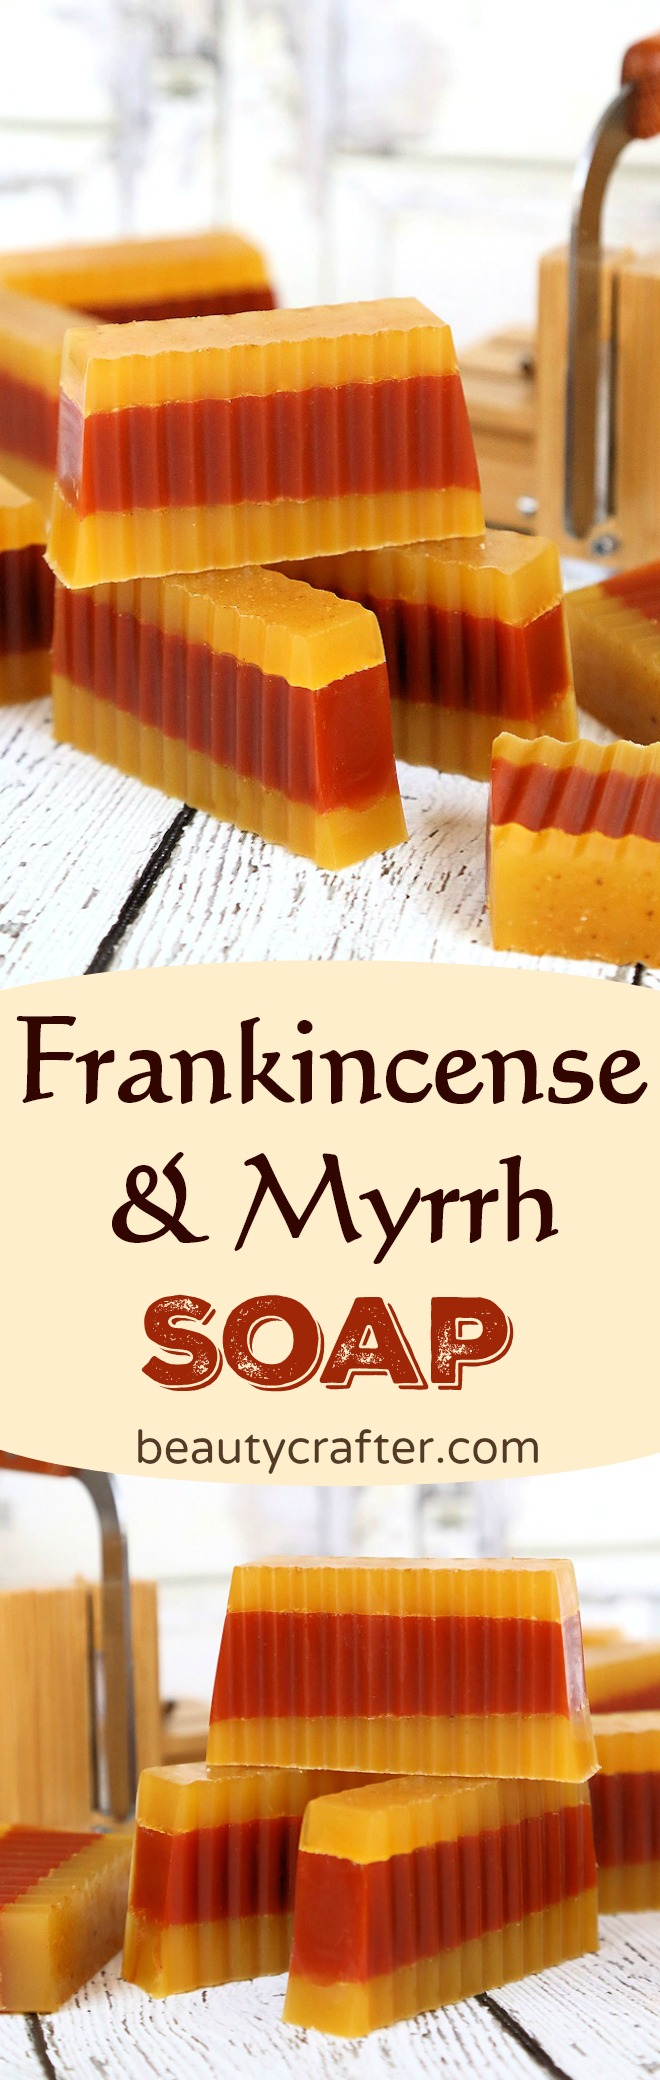 DIY Frankincense Myrrh Soap, what could be more appropriate as a holiday gift #christmas #frankincense #myrrh #gifts #soapmaking #soap #crafts